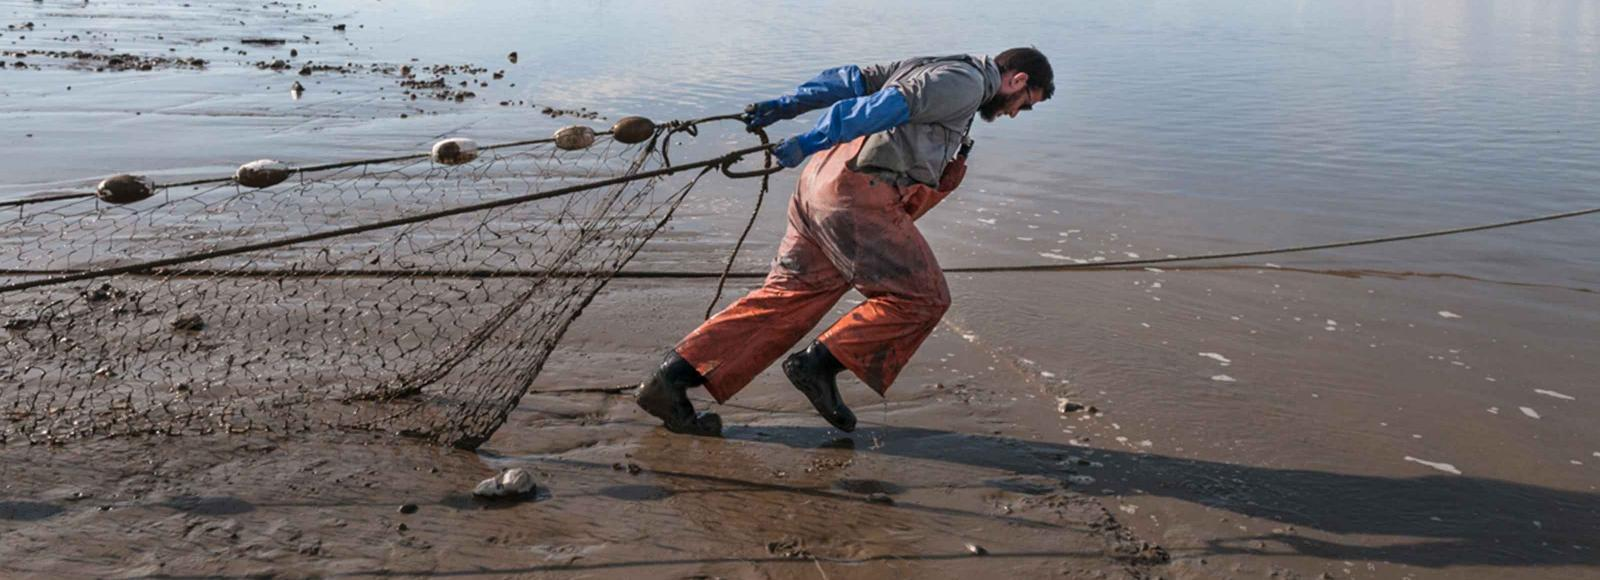 man in waders pulling a fishing net across a beach